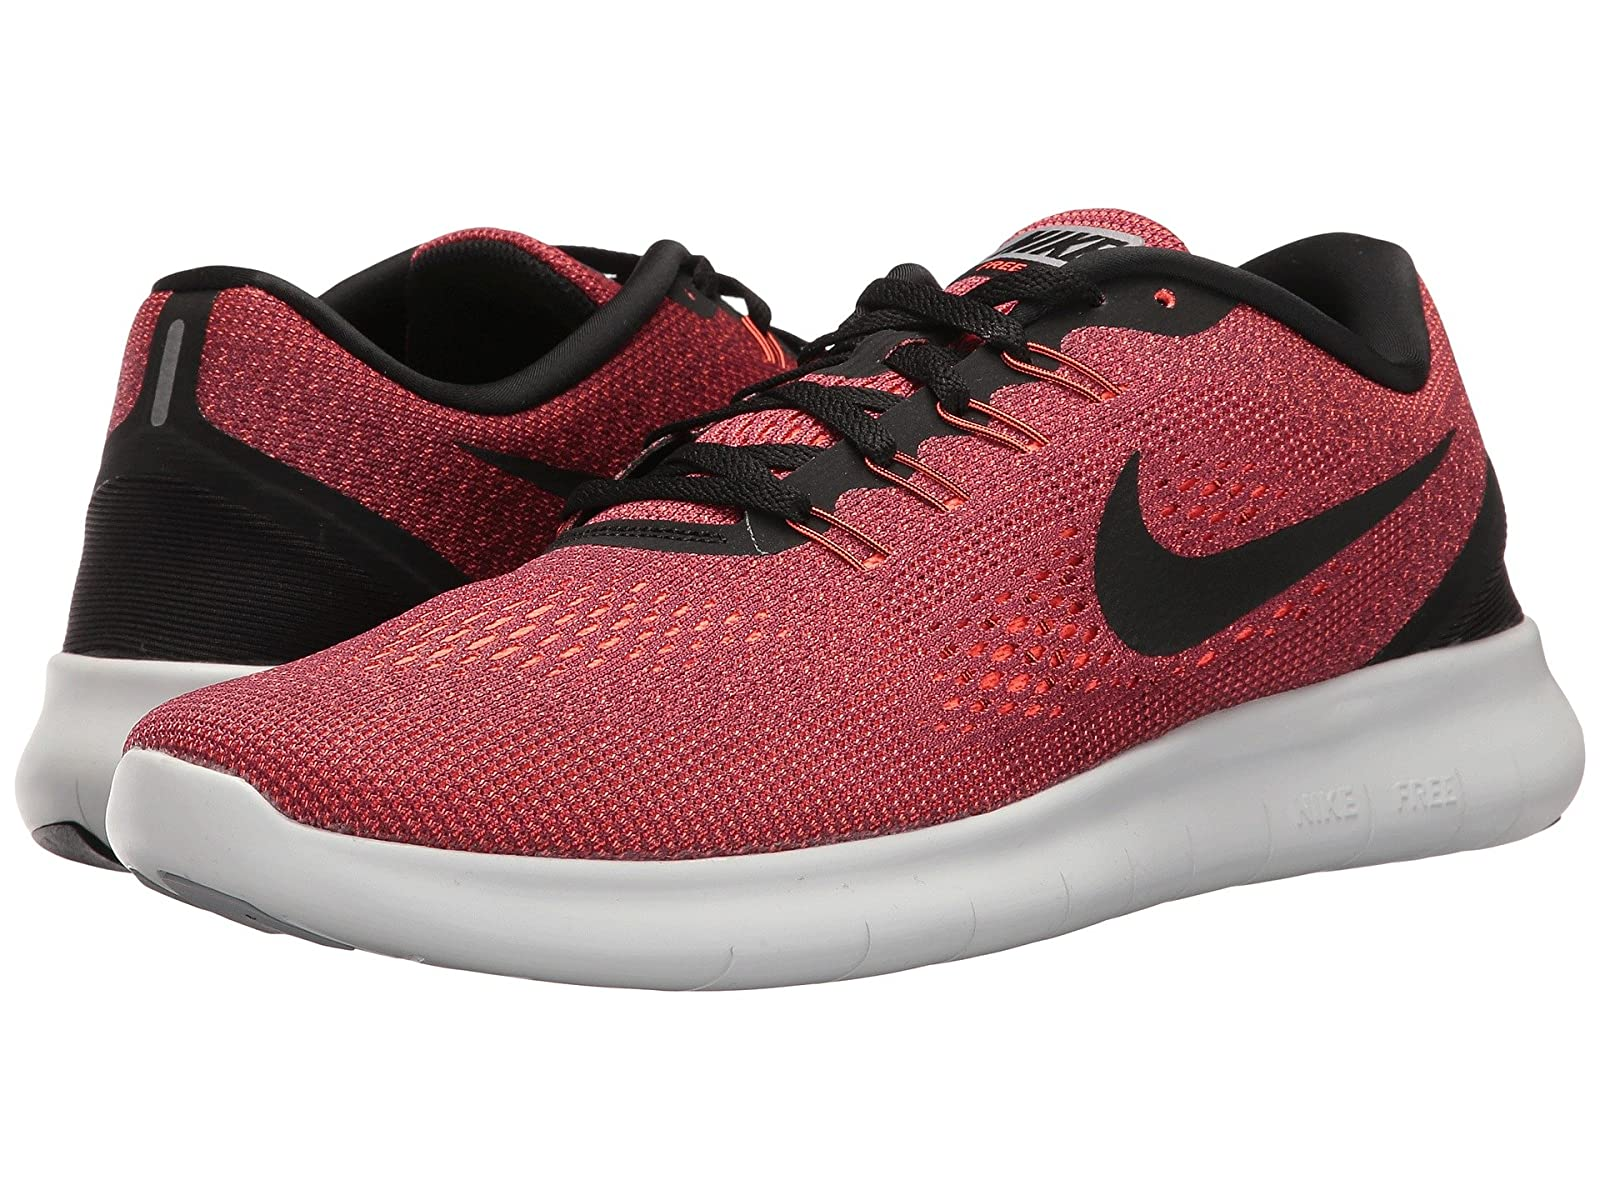 Nike Free RNCheap and distinctive eye-catching shoes